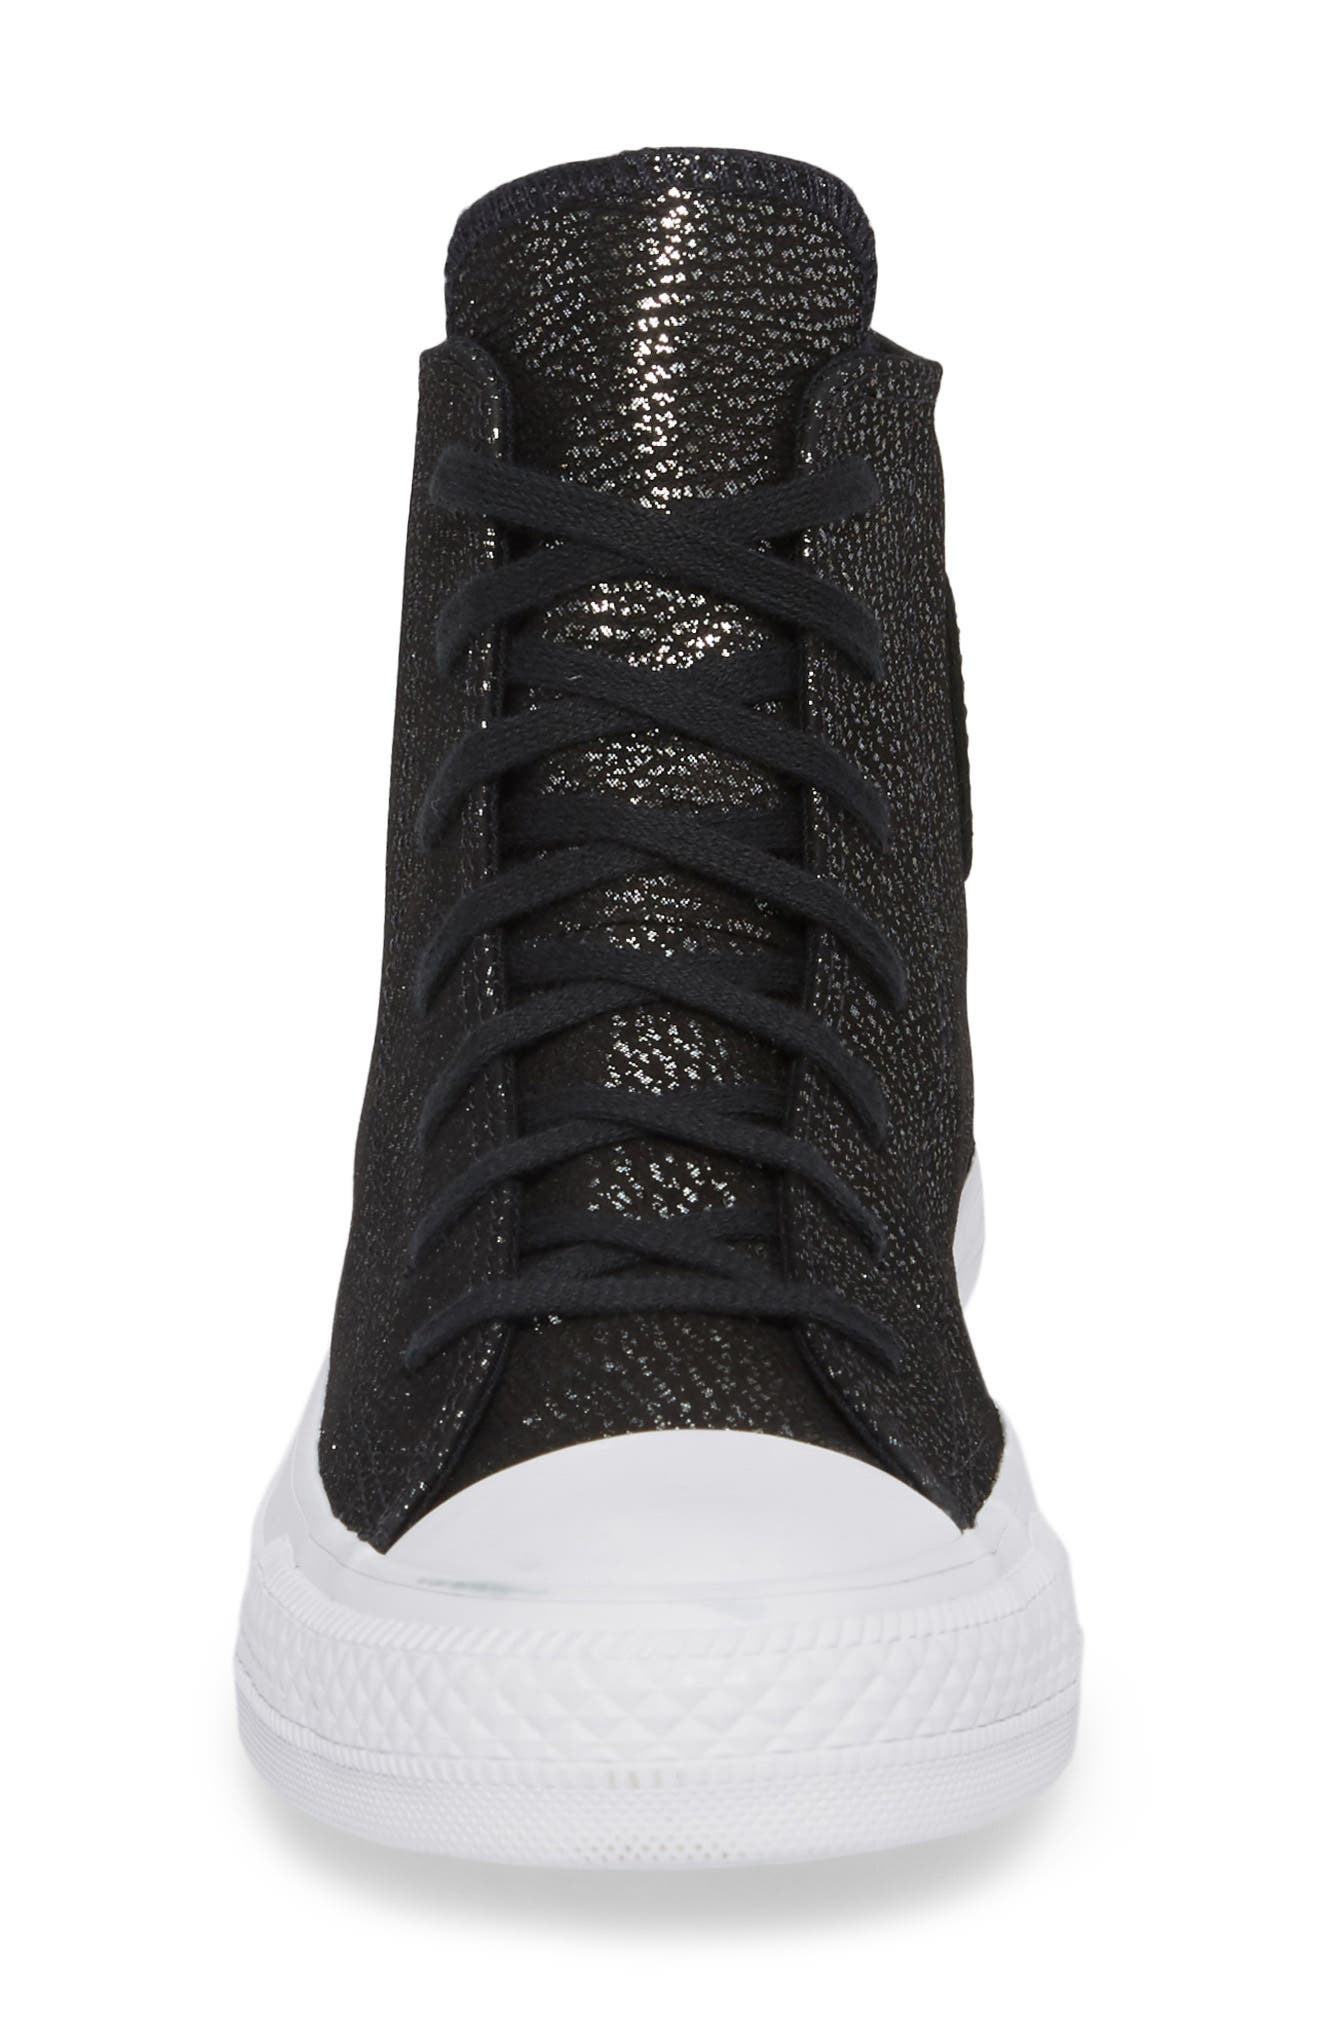 Chuck Taylor<sup>®</sup> All Star<sup>®</sup> Tipped Metallic High Top Sneaker,                             Alternate thumbnail 4, color,                             Black